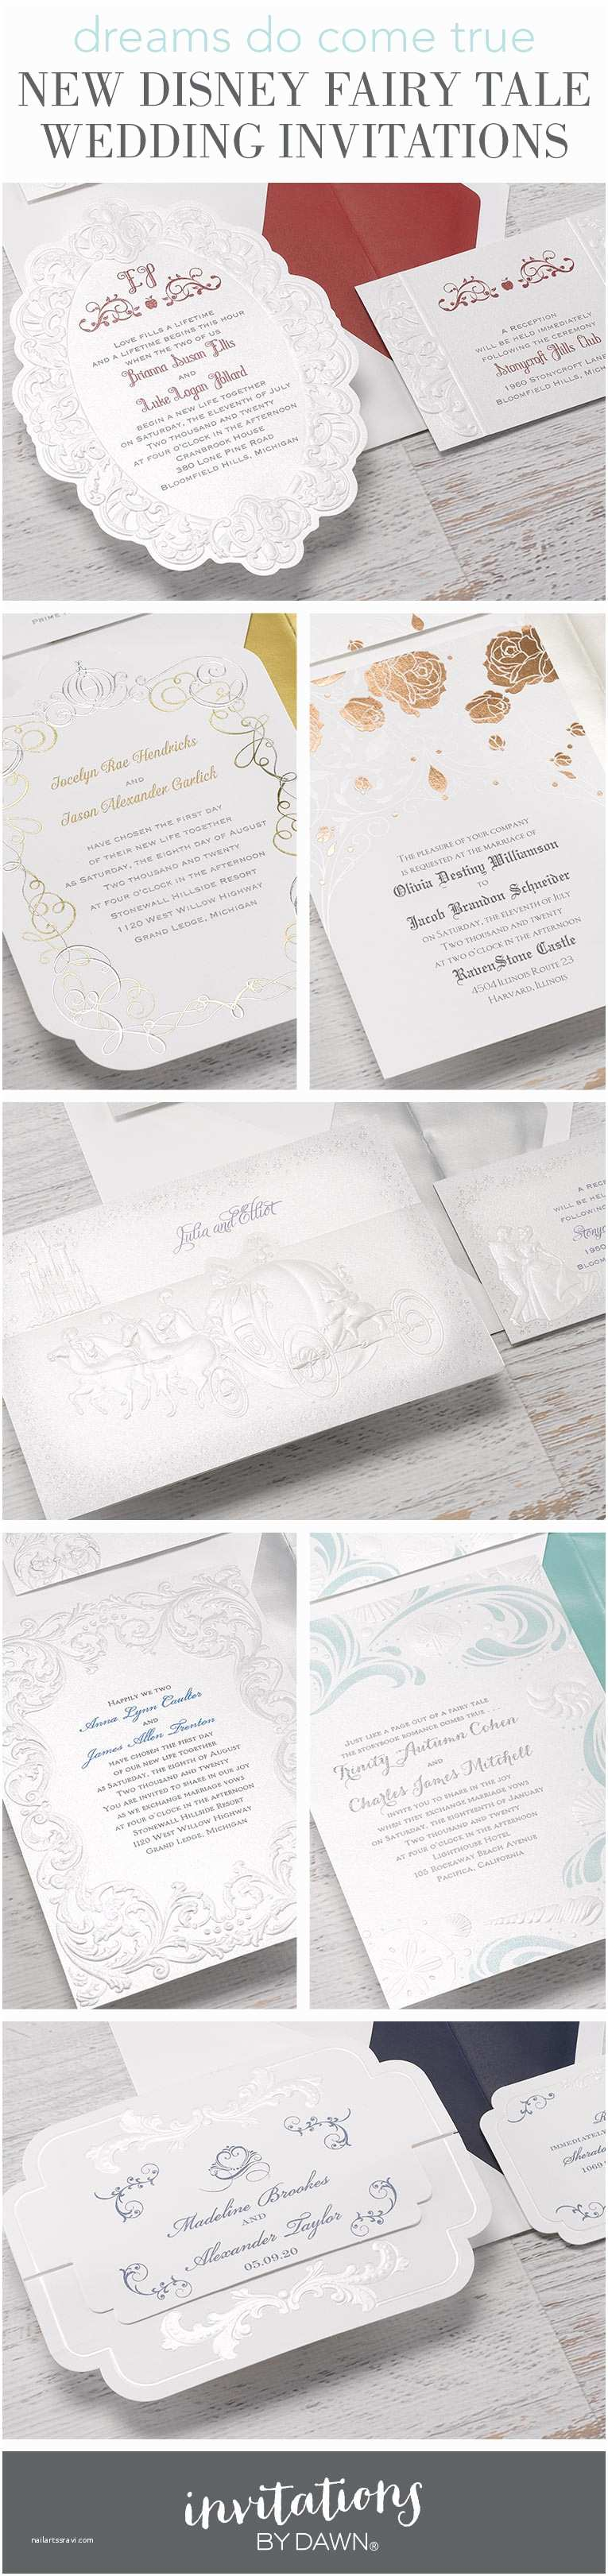 Fairy Tale Wedding Invitations New Disney Fairy Tale Wedding Invitations